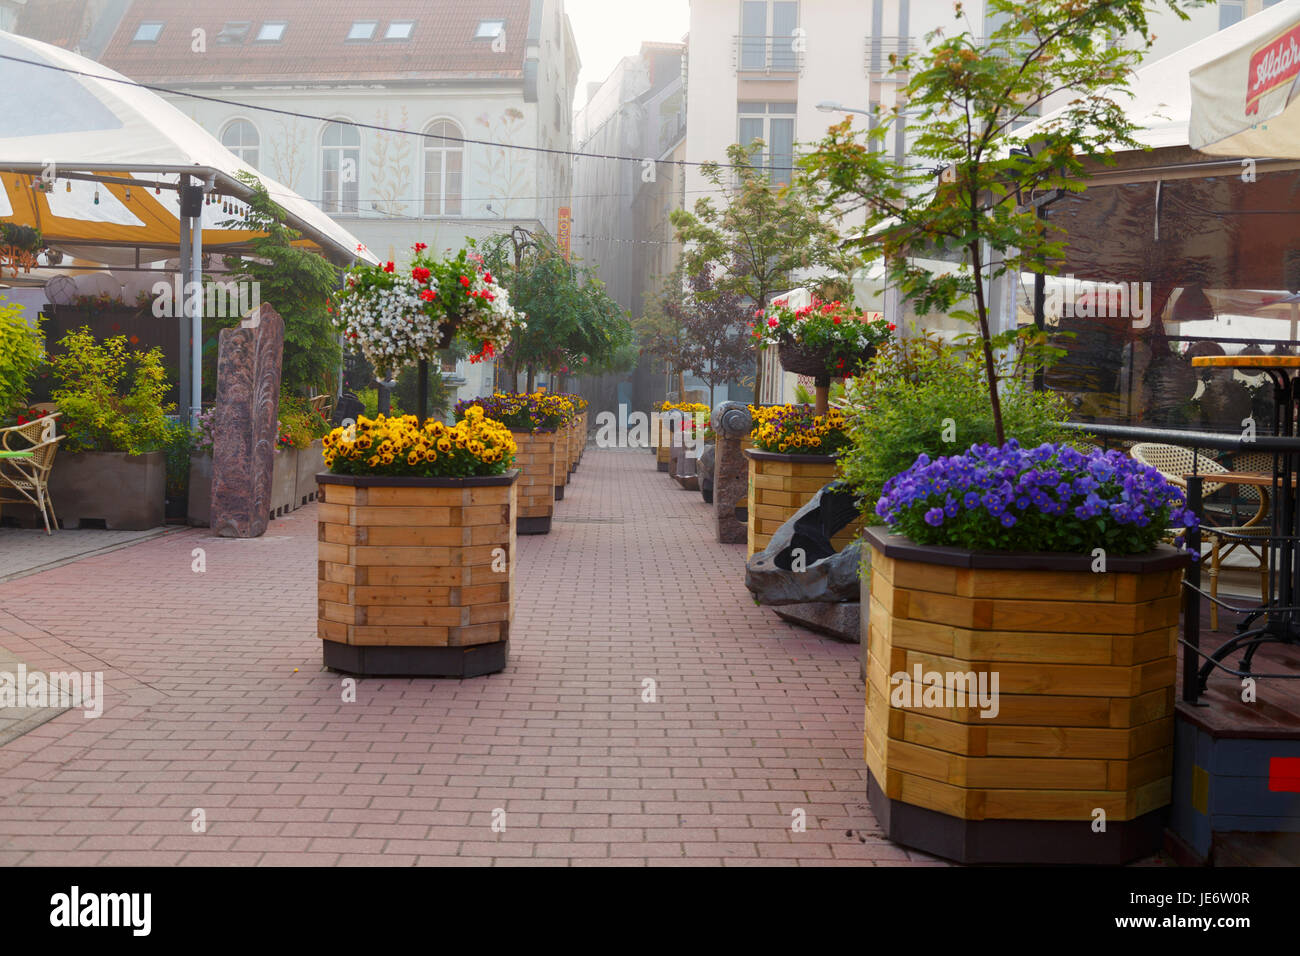 Foggy morning at historic city centre of Riga. One of the central squares with summer cafes and flowers. Latvia, Stock Photo